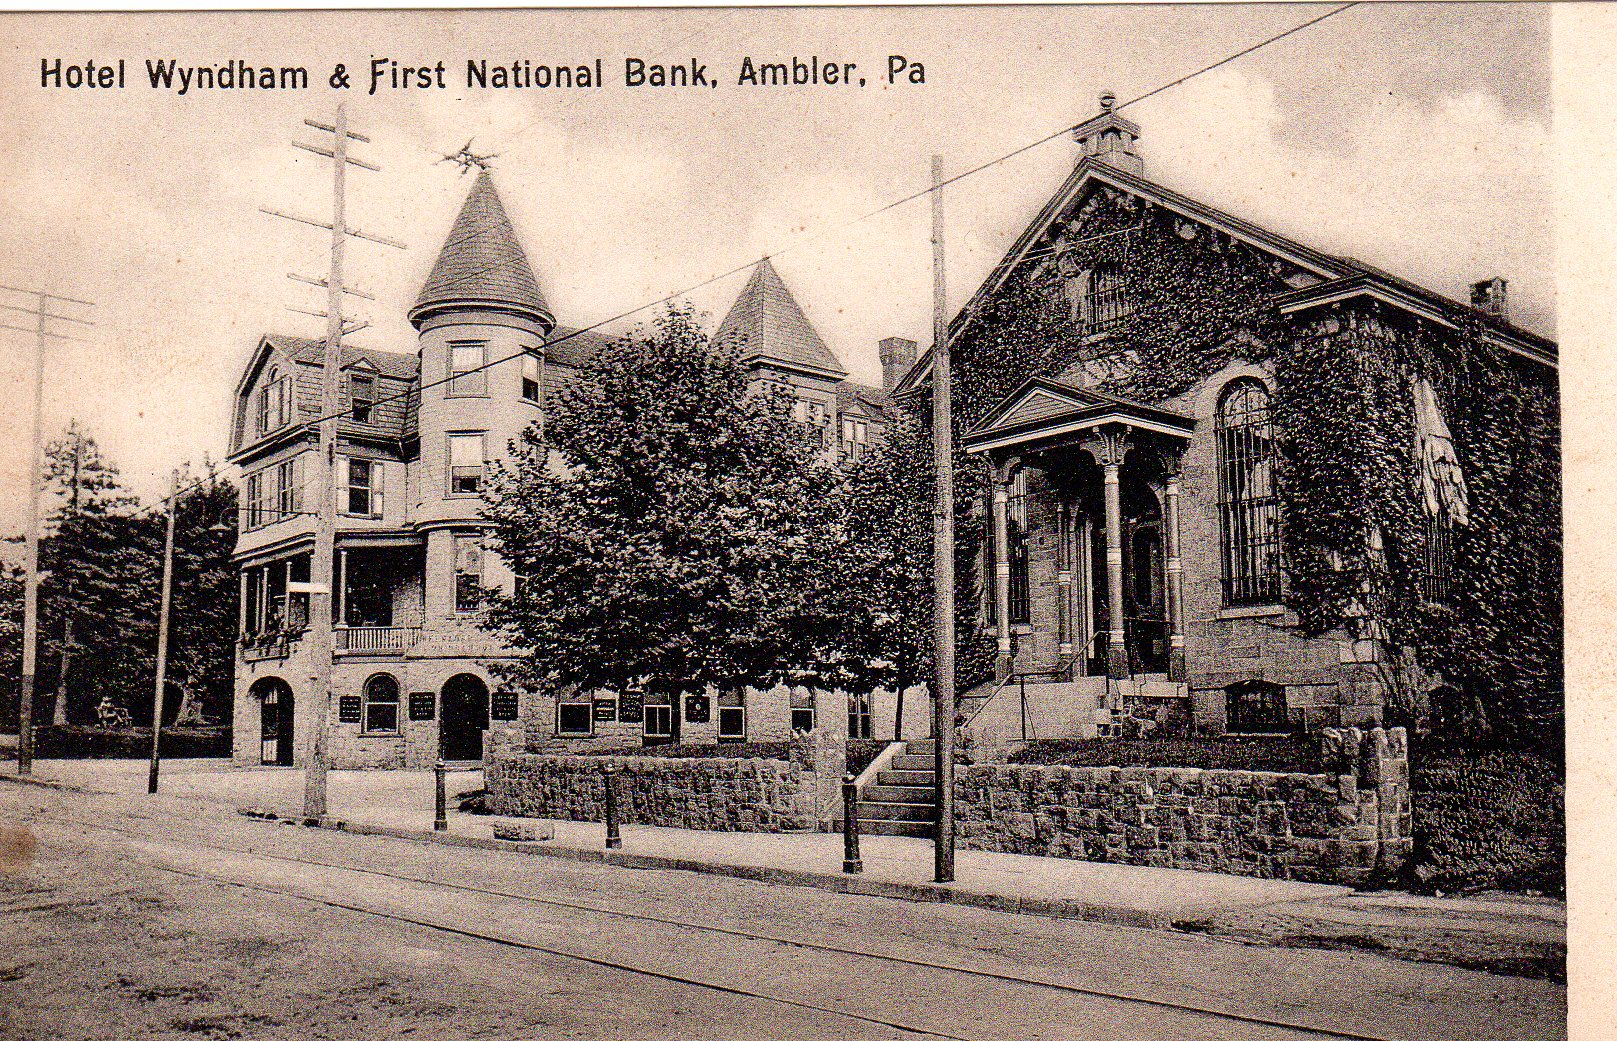 Post Card Collection (E Simon)_2682_47_Hotel Wyndham & First National Bank, Ambler, Pa